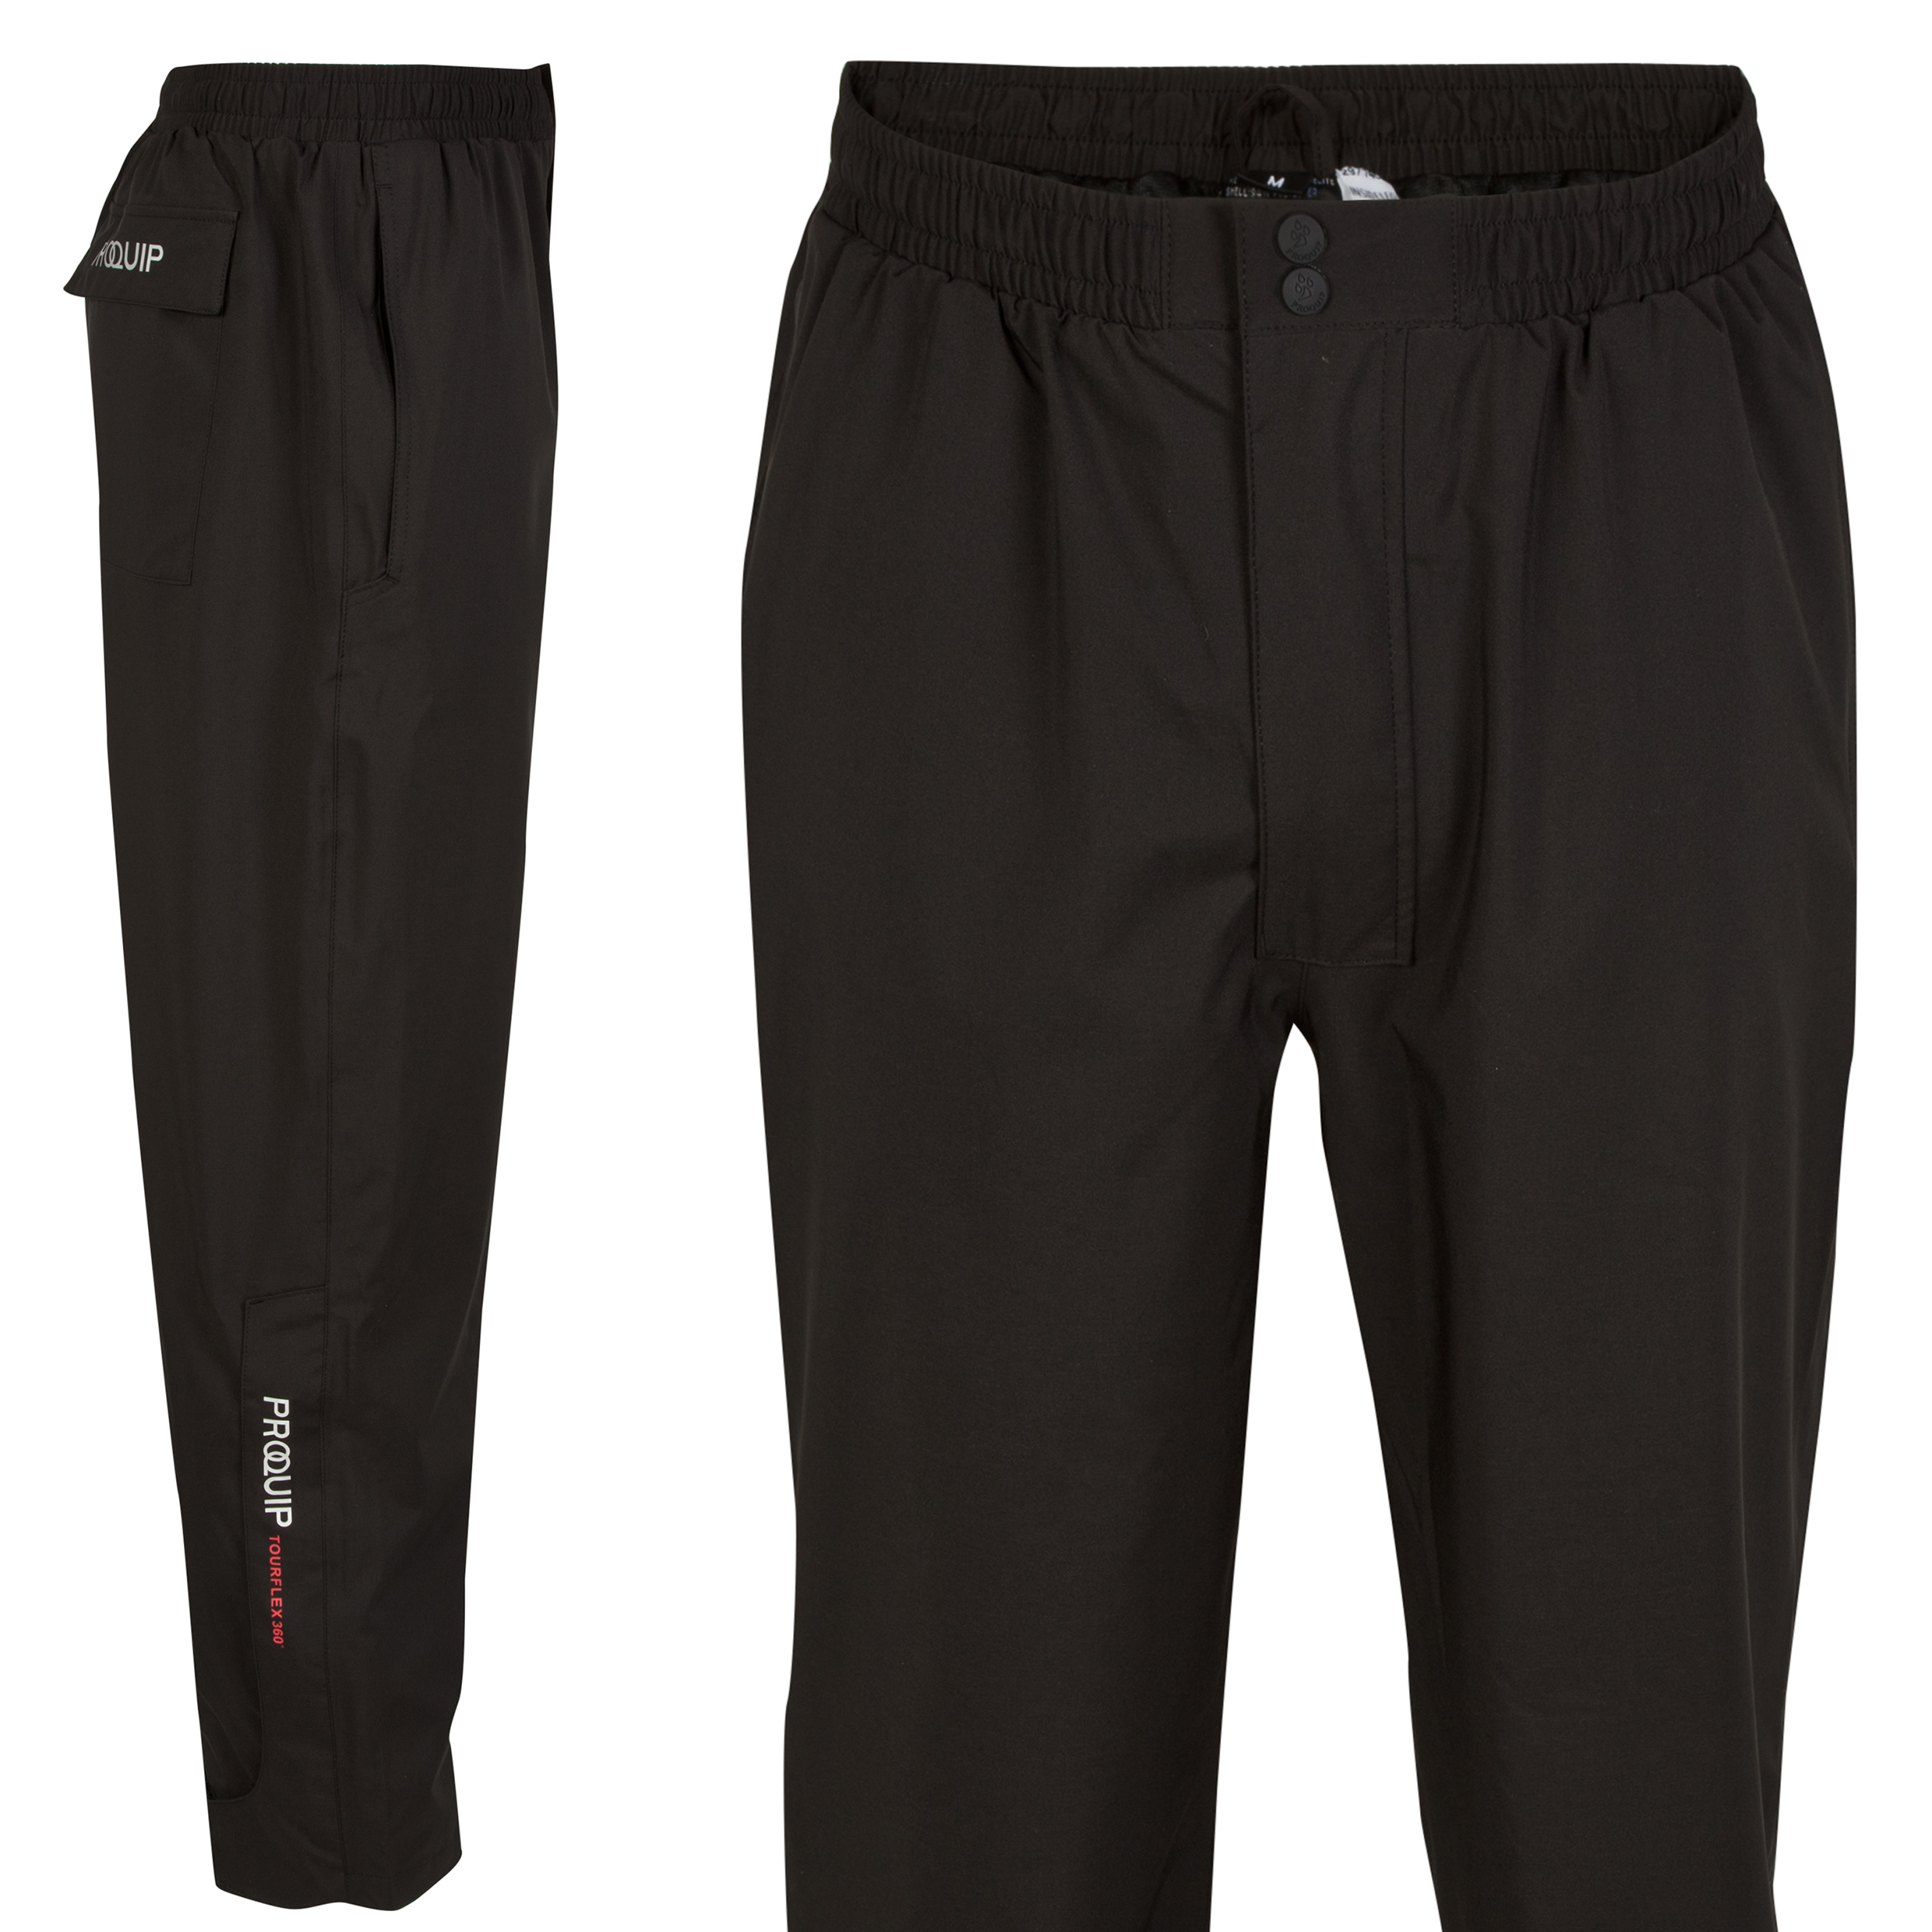 The 2014 Ryder Cup Tourflex Waterproof Trouser 29 Inch Leg Black